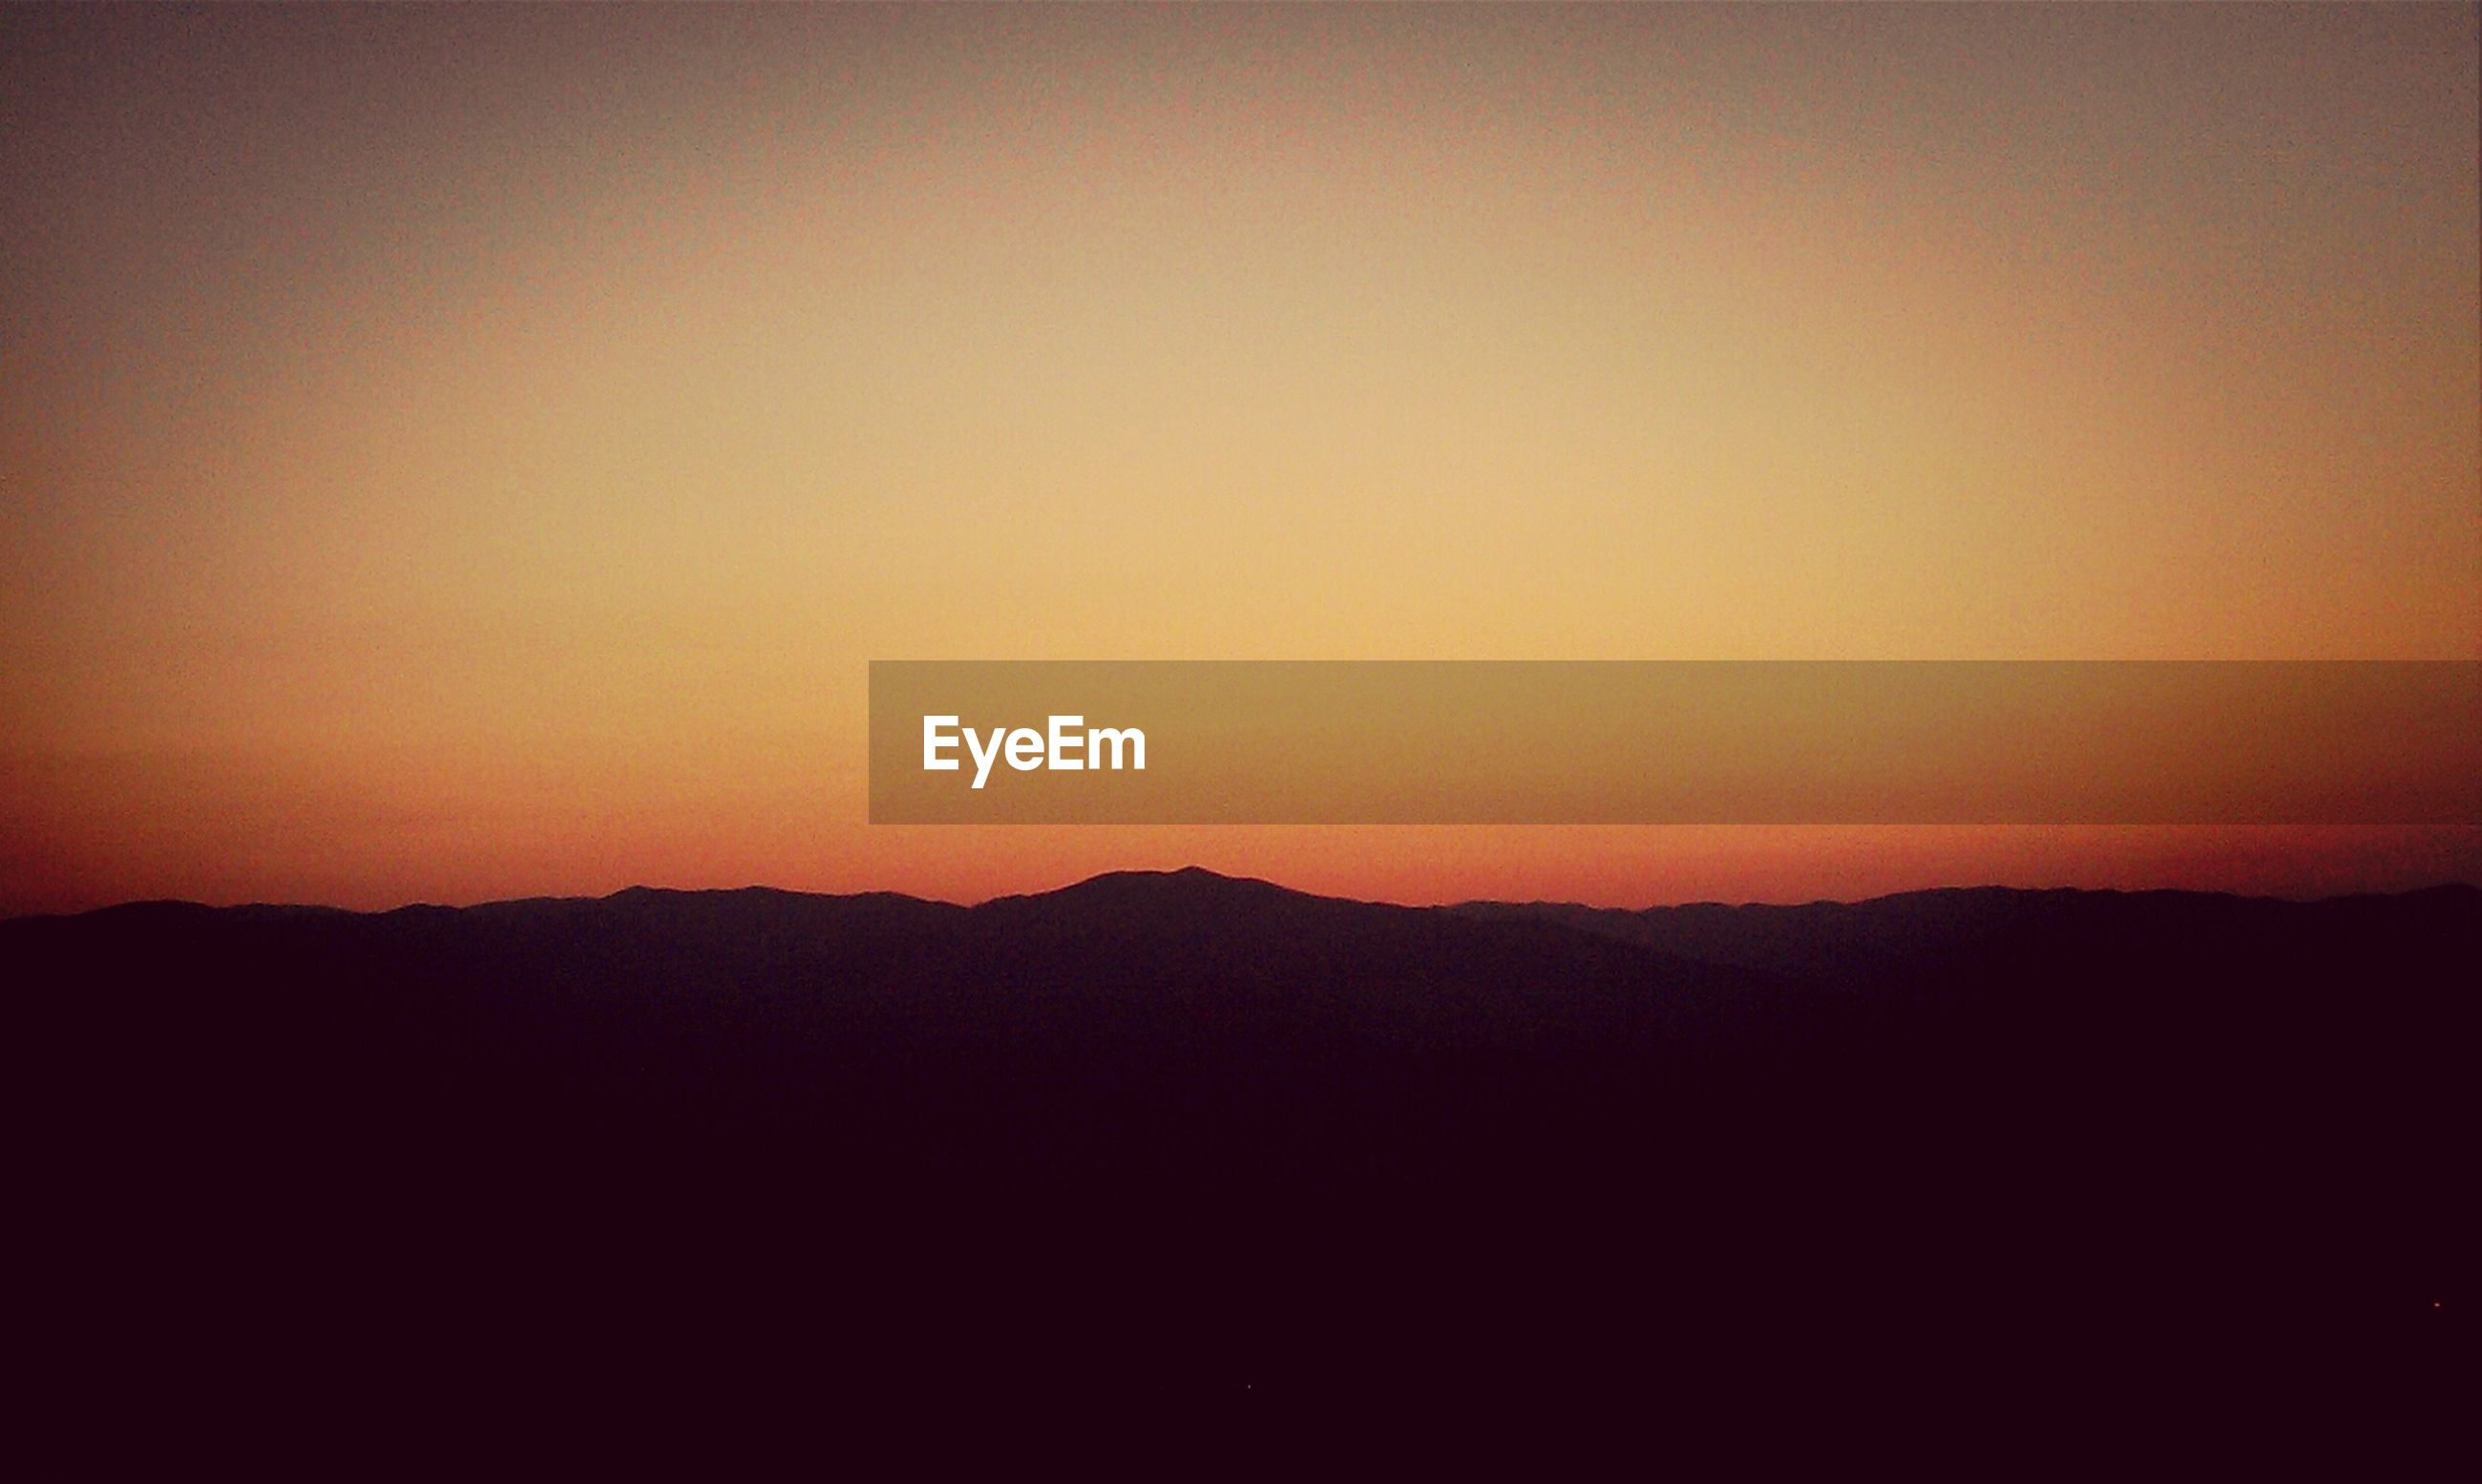 sunset, copy space, silhouette, scenics, tranquil scene, tranquility, beauty in nature, mountain, clear sky, orange color, nature, idyllic, landscape, mountain range, dark, dusk, sky, outdoors, non-urban scene, outline